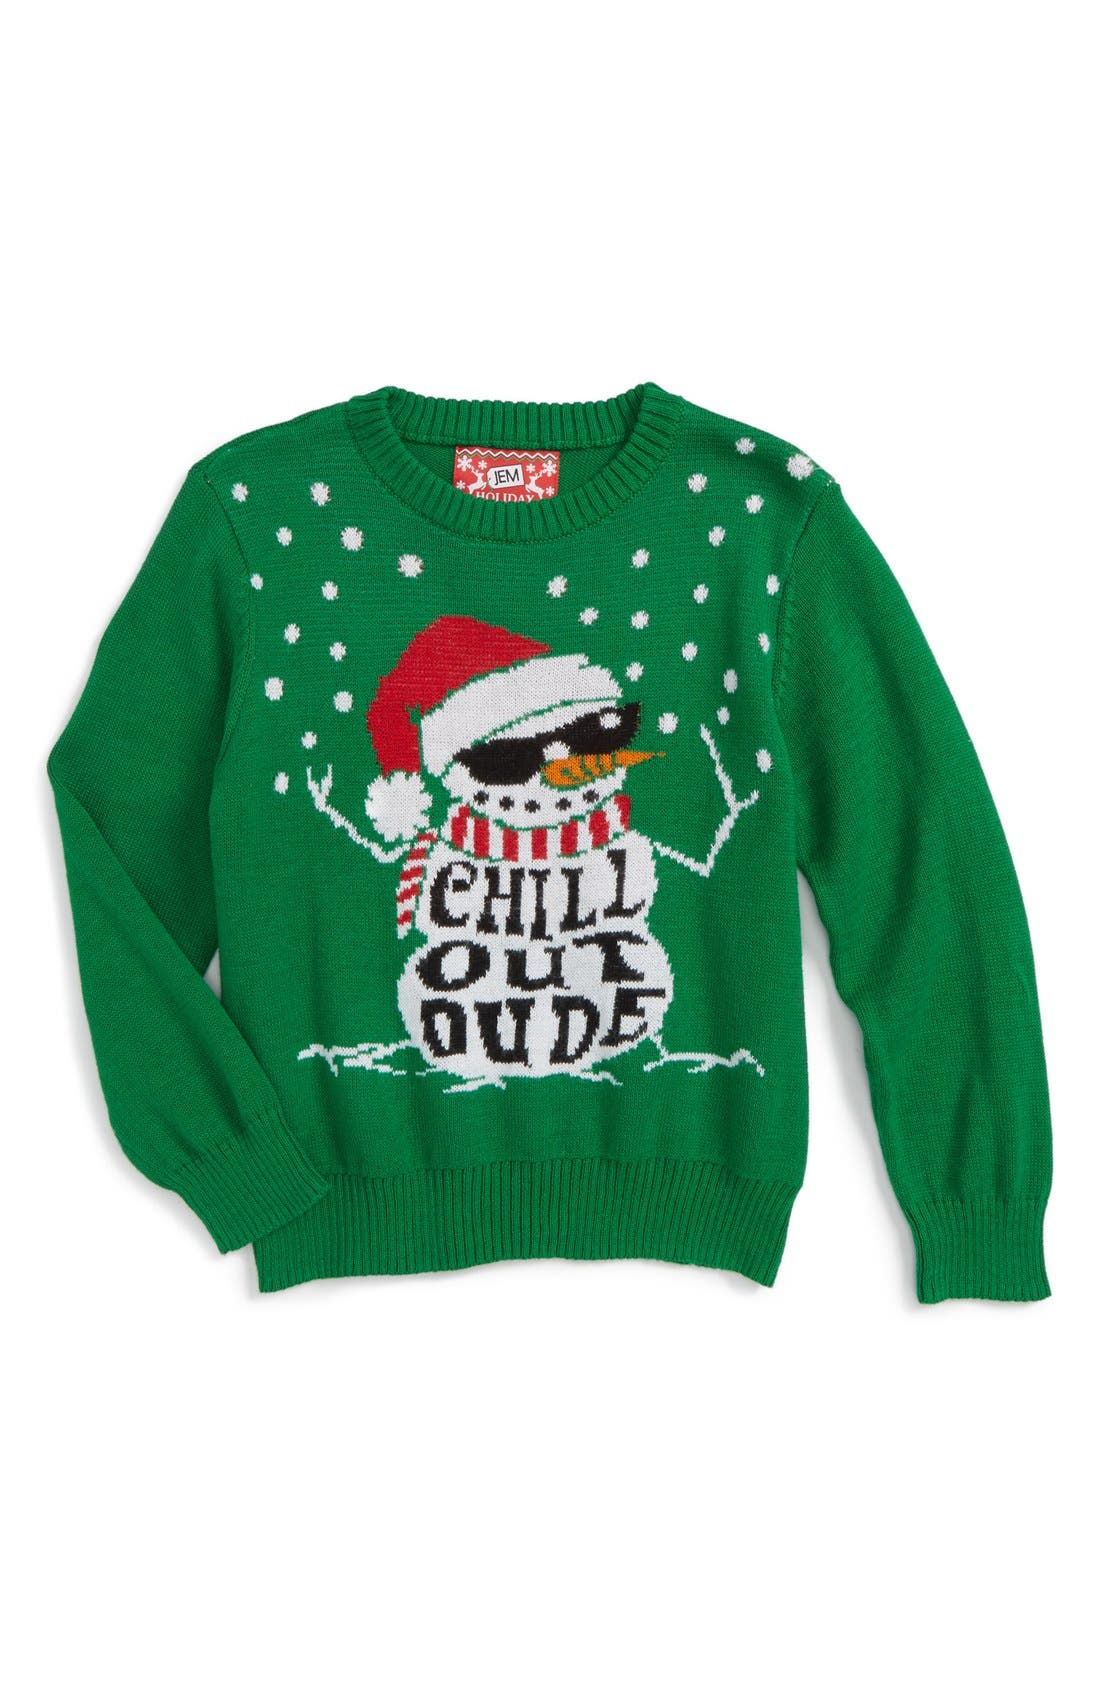 Alternate Image 1 Selected - Jem Chill Out Dude Sweater (Toddler Boys & Little Boys)